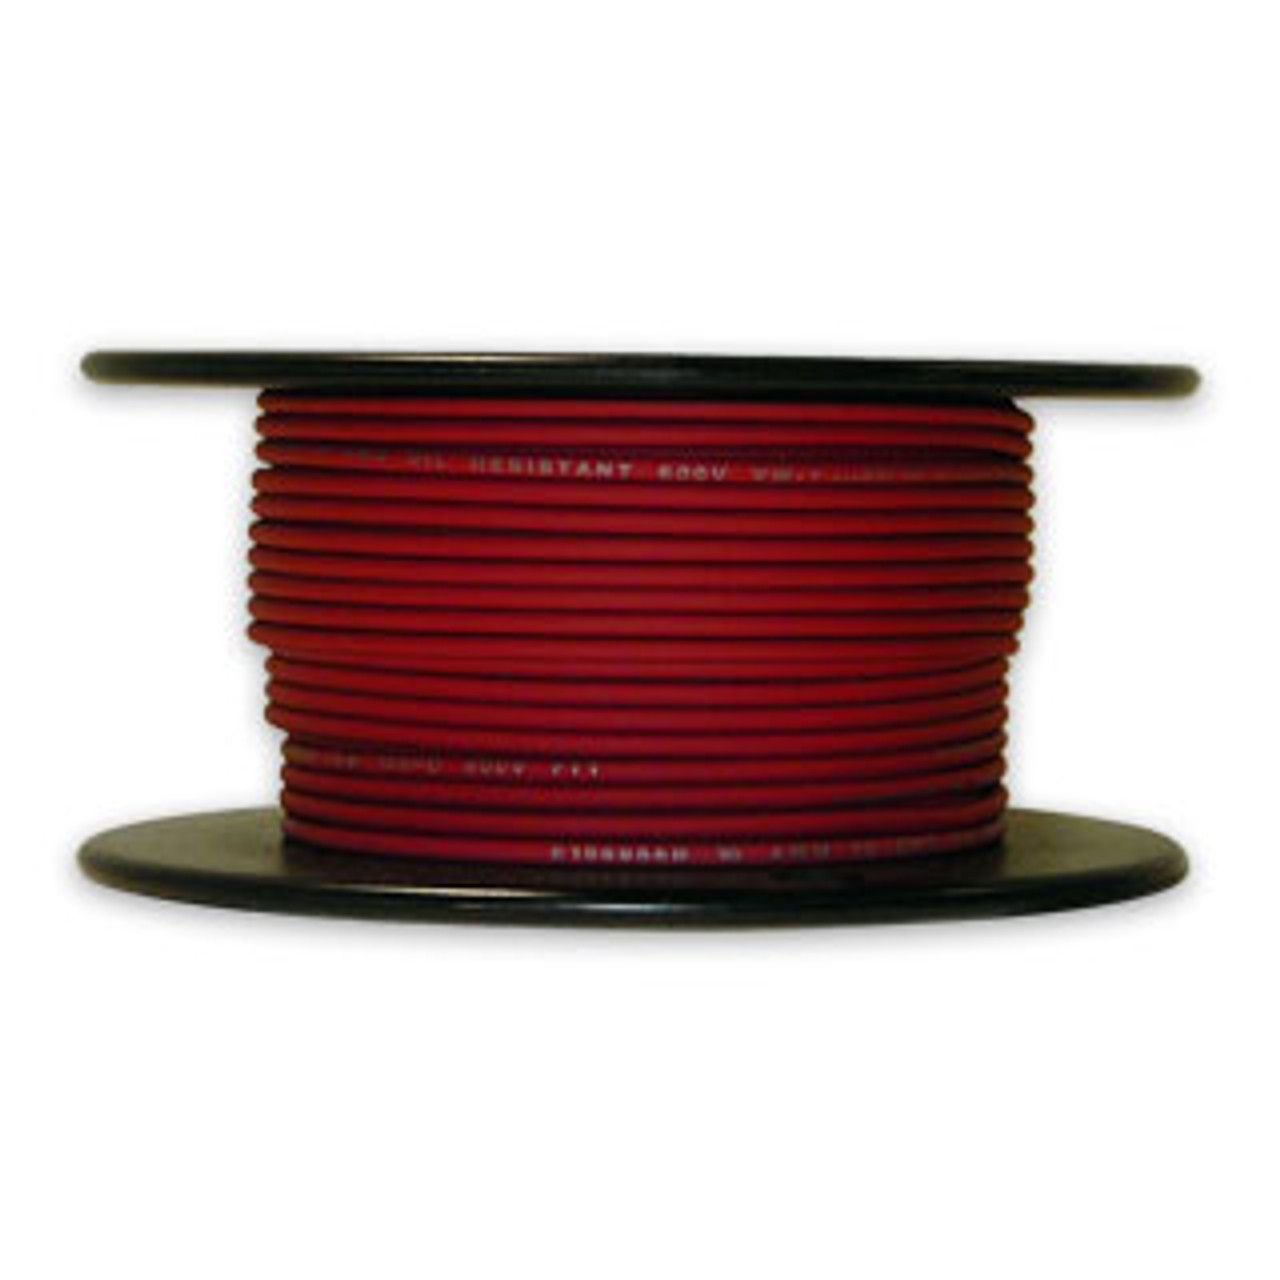 Arctic Ultraflex Cold Weather Flexible Wire 100 Foot Spool 16 AWG Red